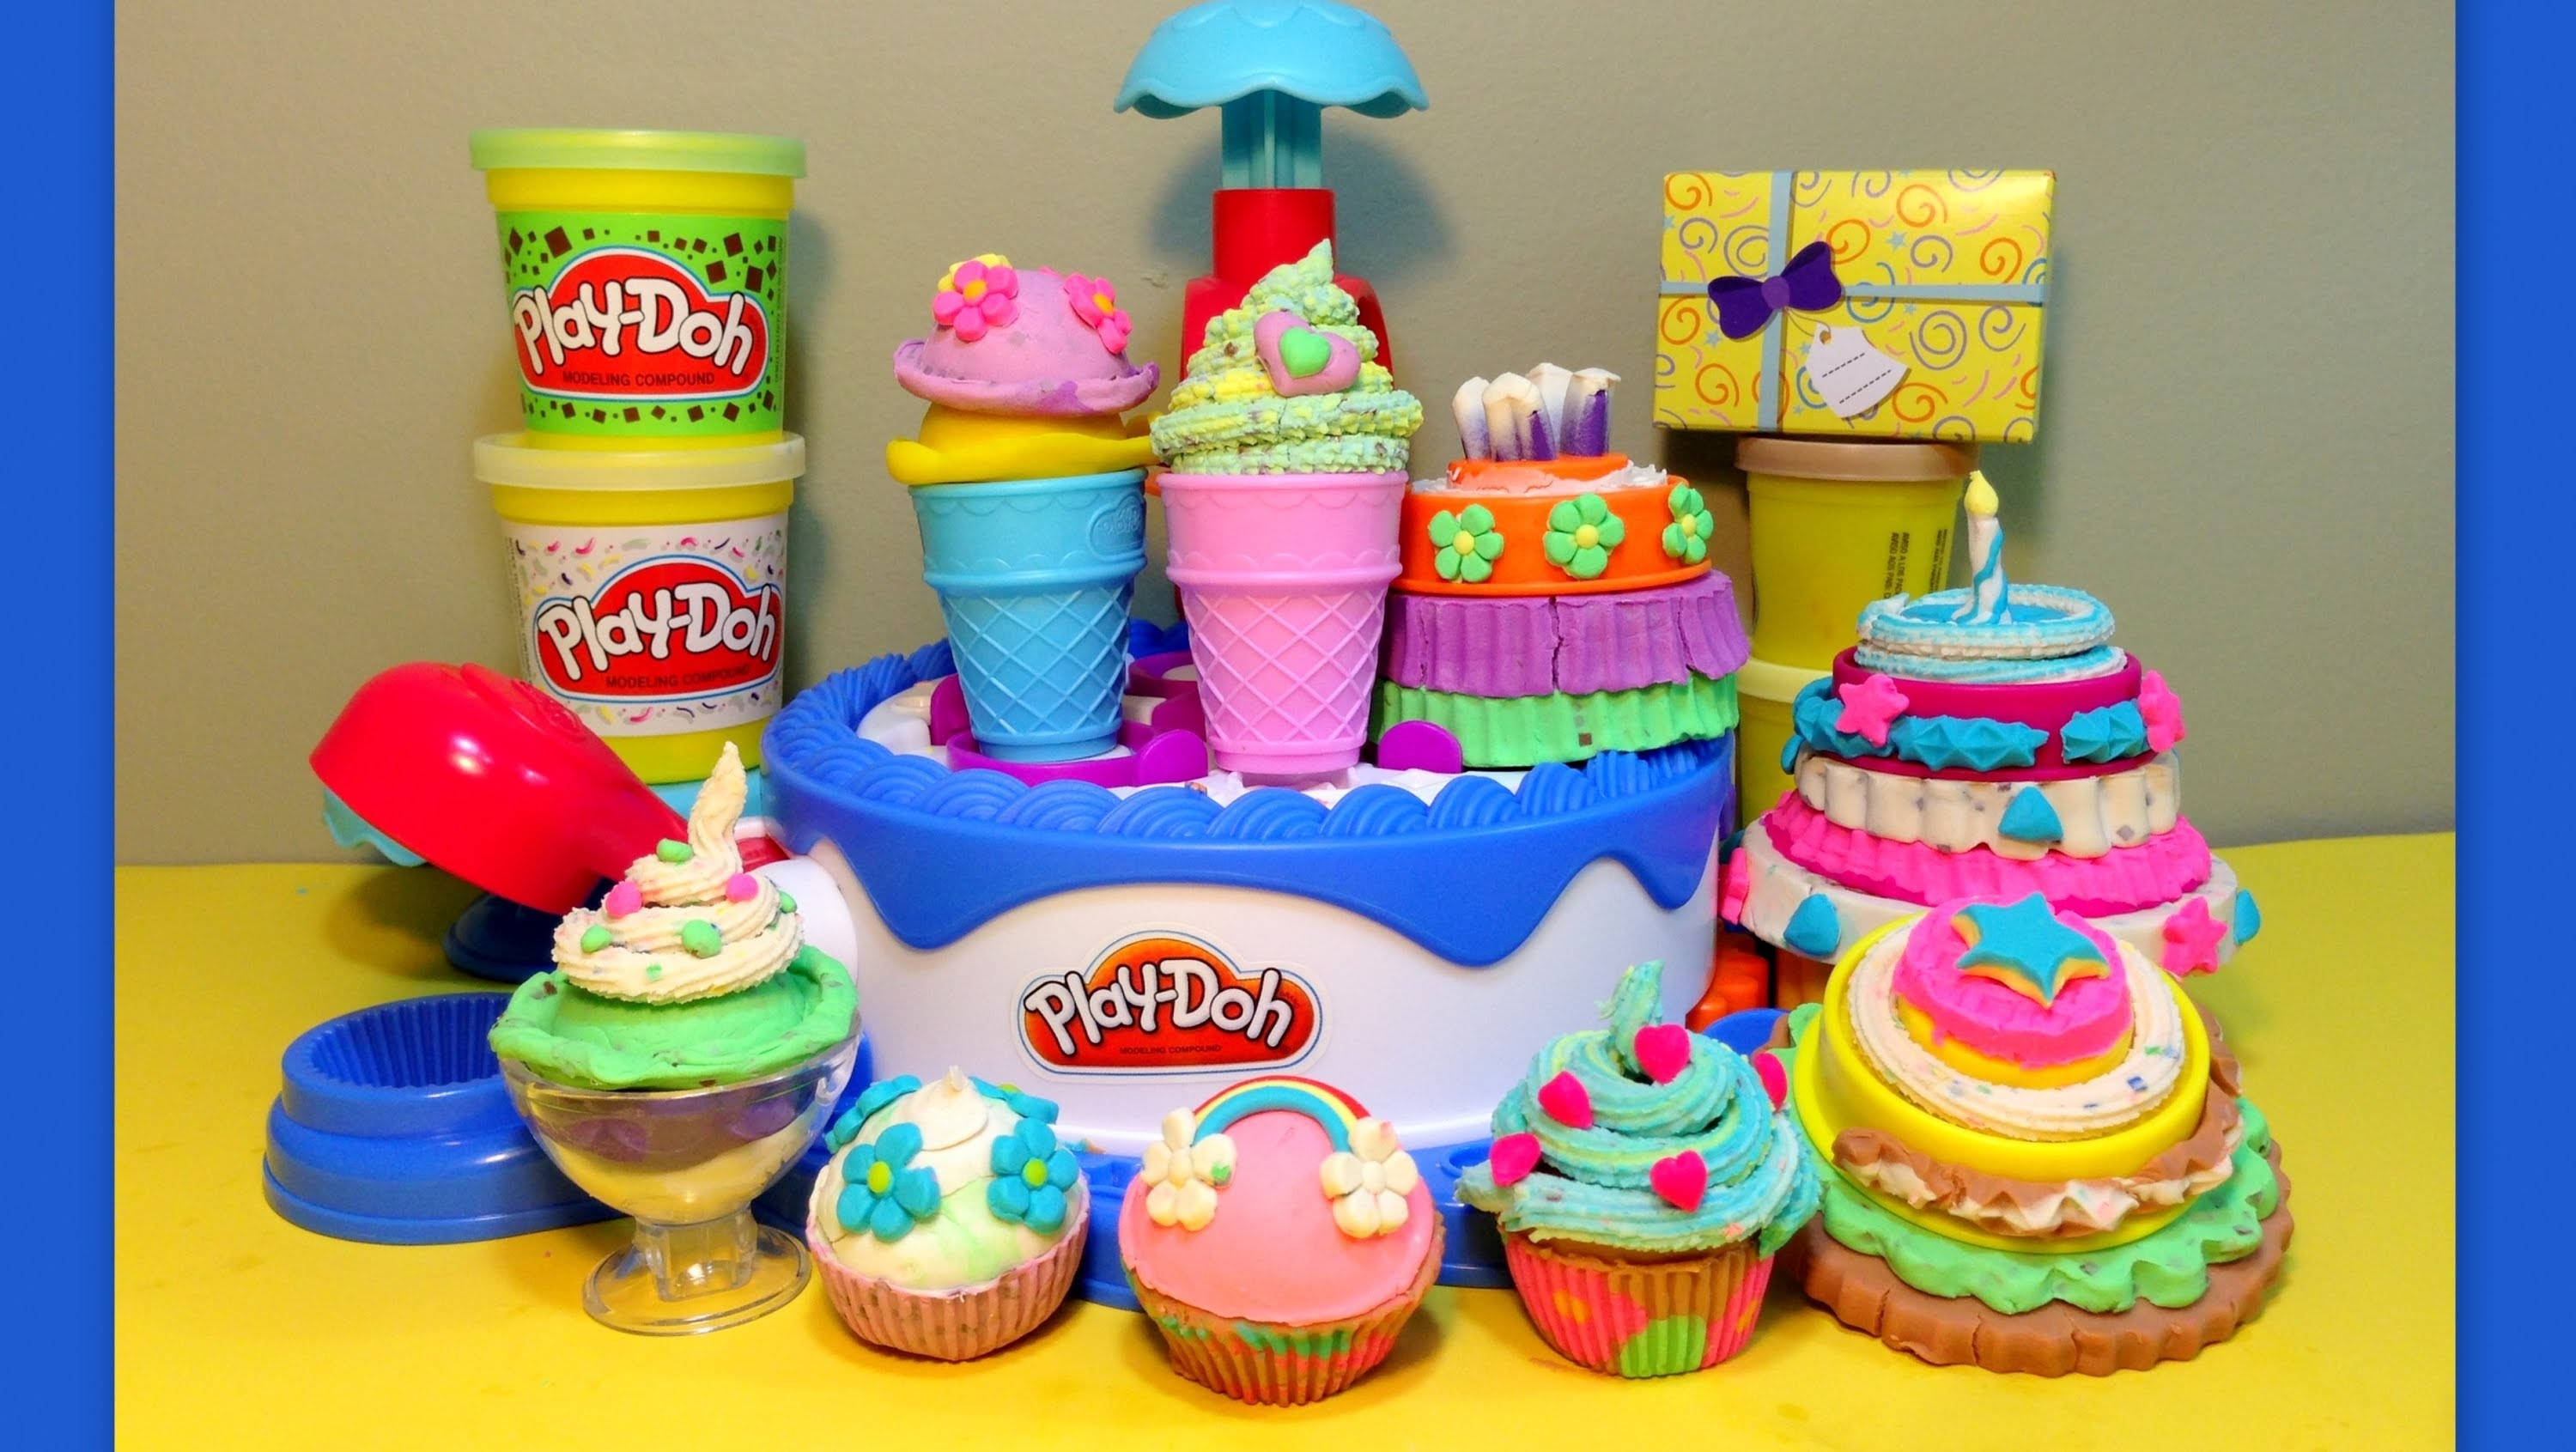 Play-Doh-HUGE ★ Cake & Ice Cream Confections Playset ★40+Accessories-Hasbro-Sweets Shoppe